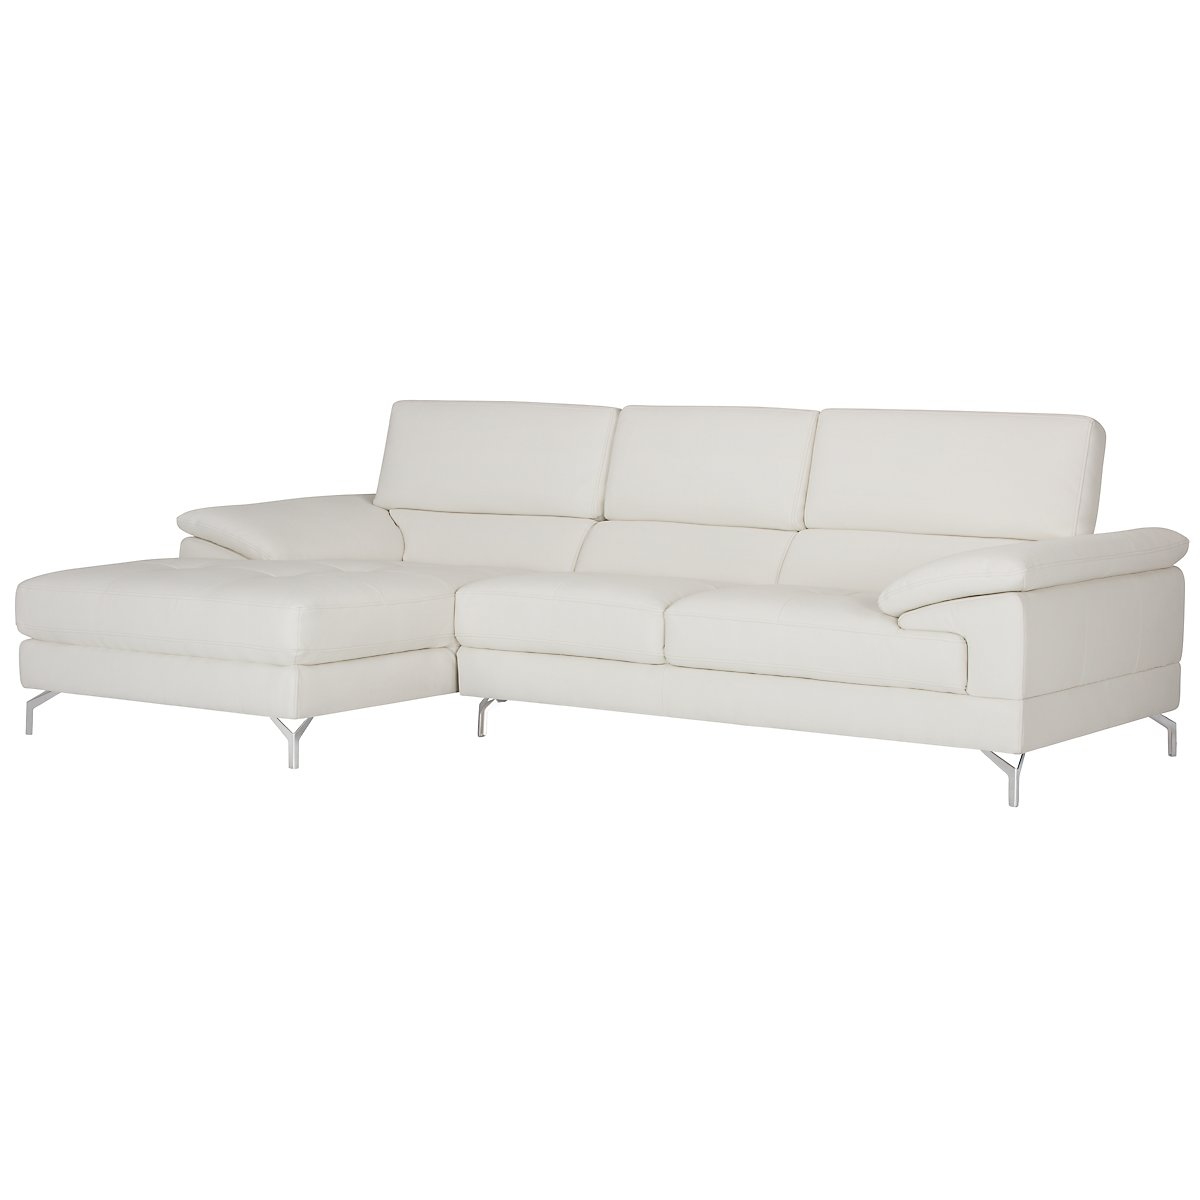 Dash White Microfiber Left Chaise Sectional